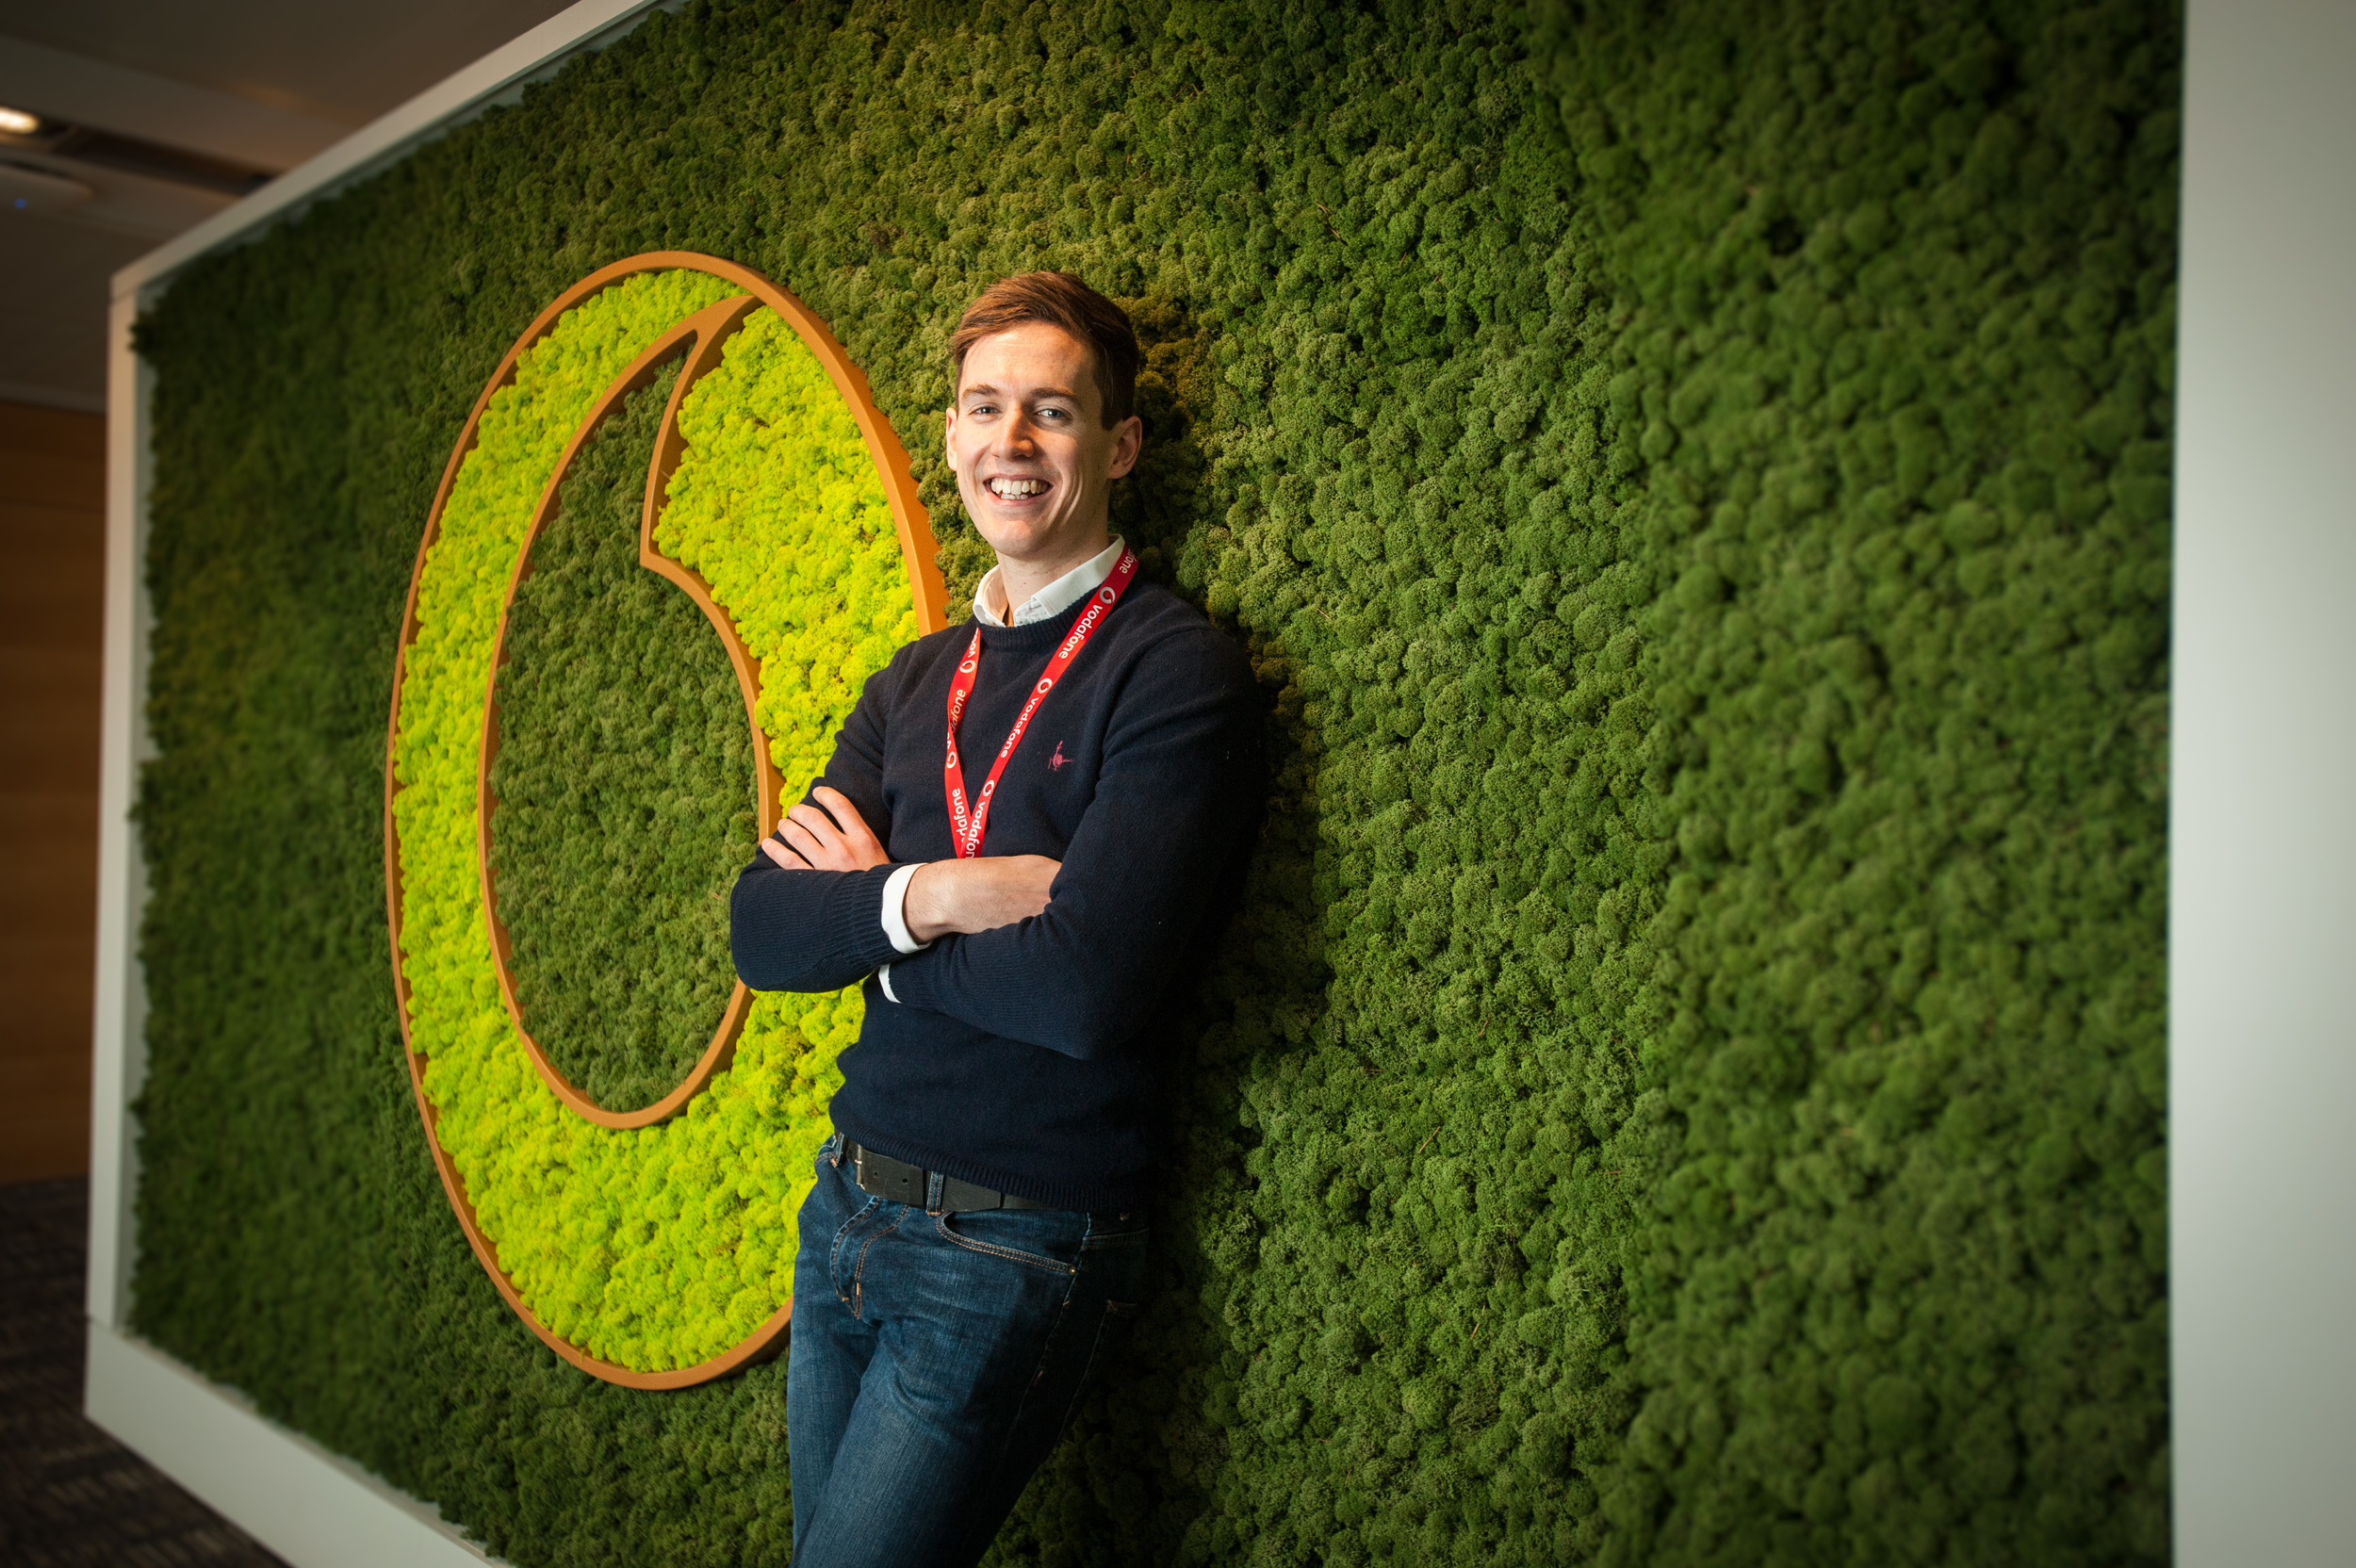 I recently had the chance to work at Vodafone HQ in Newbury. The site is absolutely enormous, I had no idea that it is the worlds second largest telephone company, not bad considering their first office was above a curry house in Newbury.